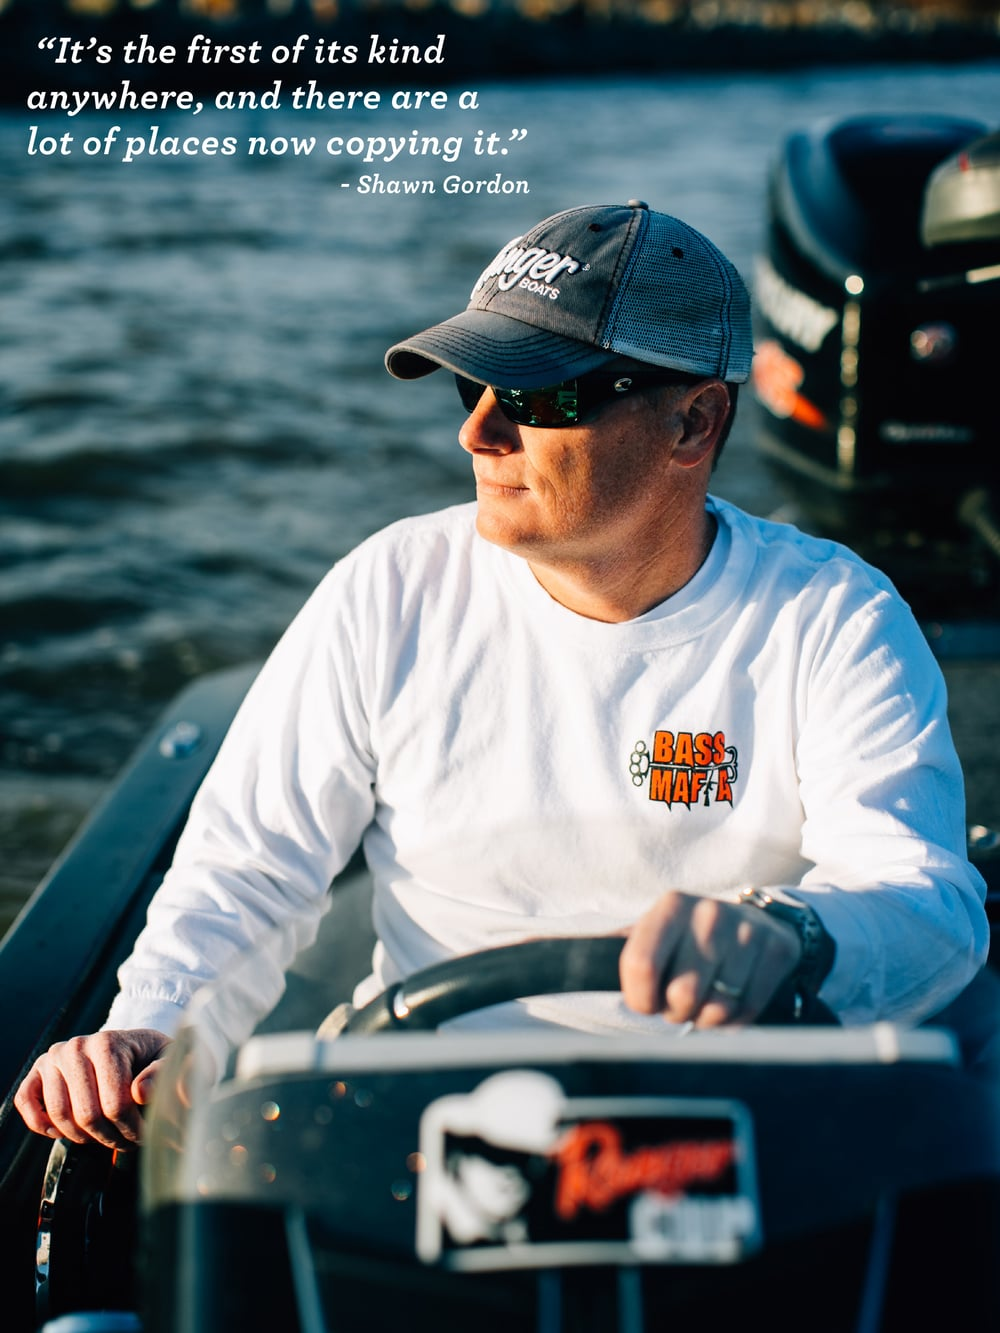 Championship tournament fisherman Shawn Gordon searches for the perfect spot on his hometown lake.